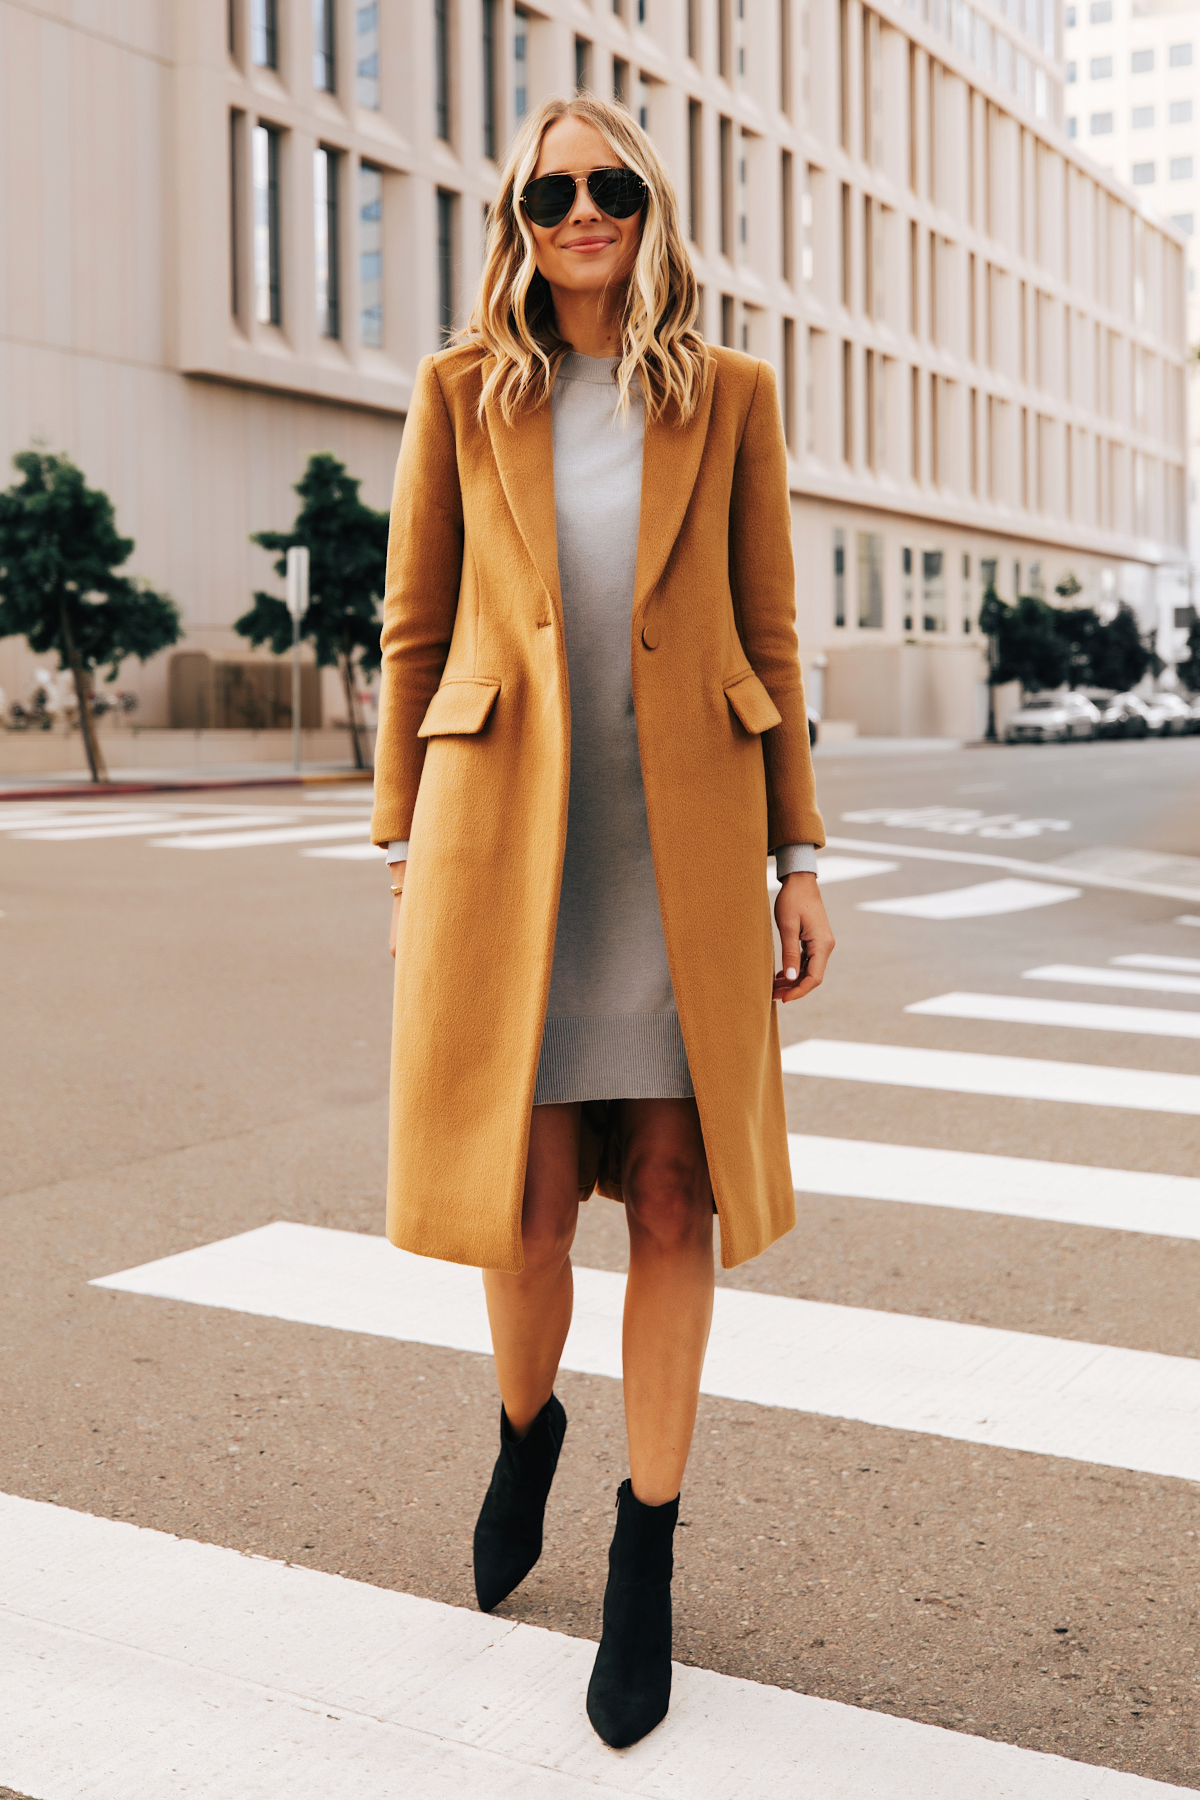 Fashion Jackson Wearing Club Monaco Camel Coat Grey Sweater Dress Black Booties